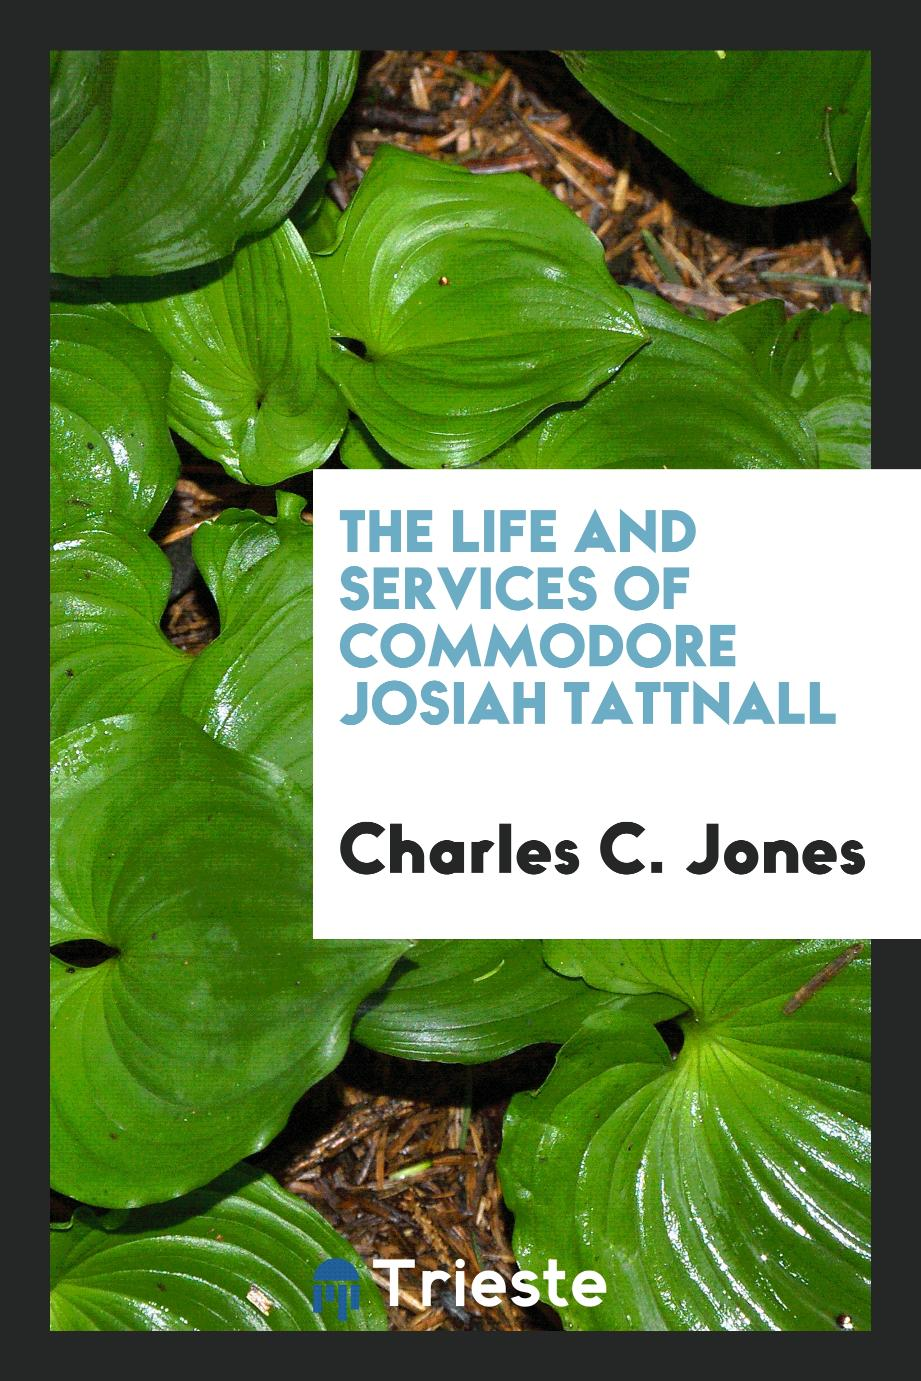 The life and services of Commodore Josiah Tattnall